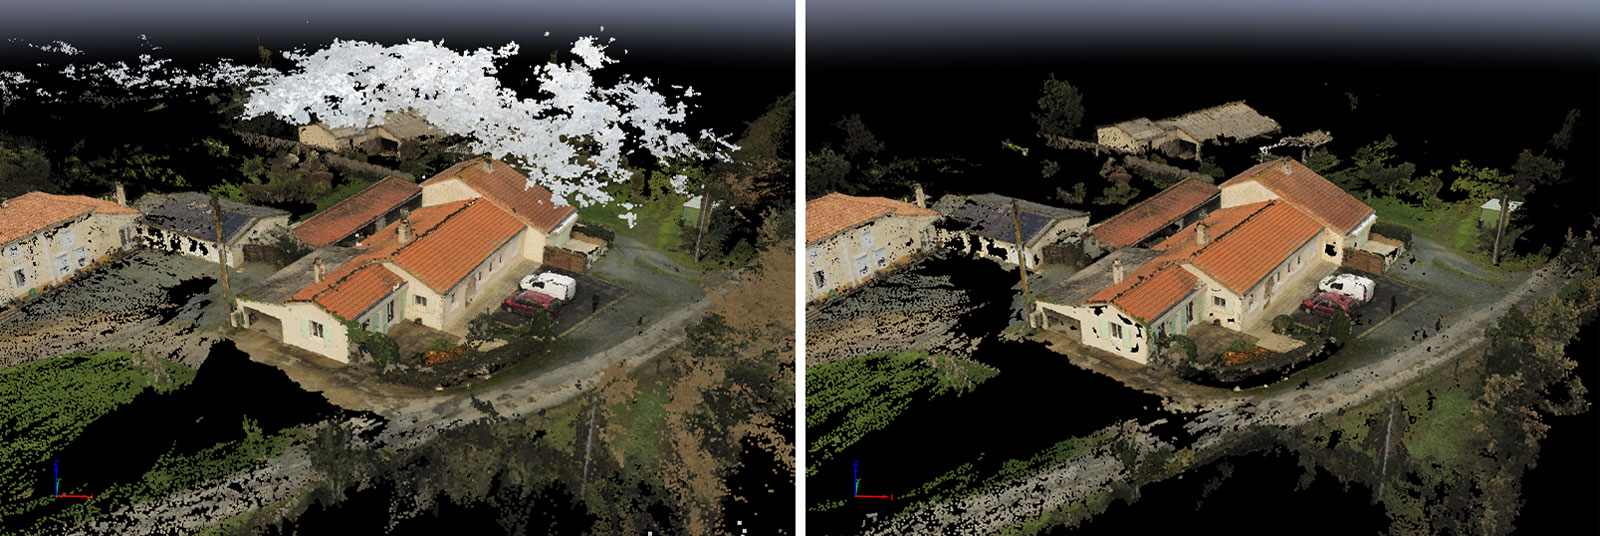 Fewer outliers in the point cloud due to sky with Pix4Dmapper 4.5